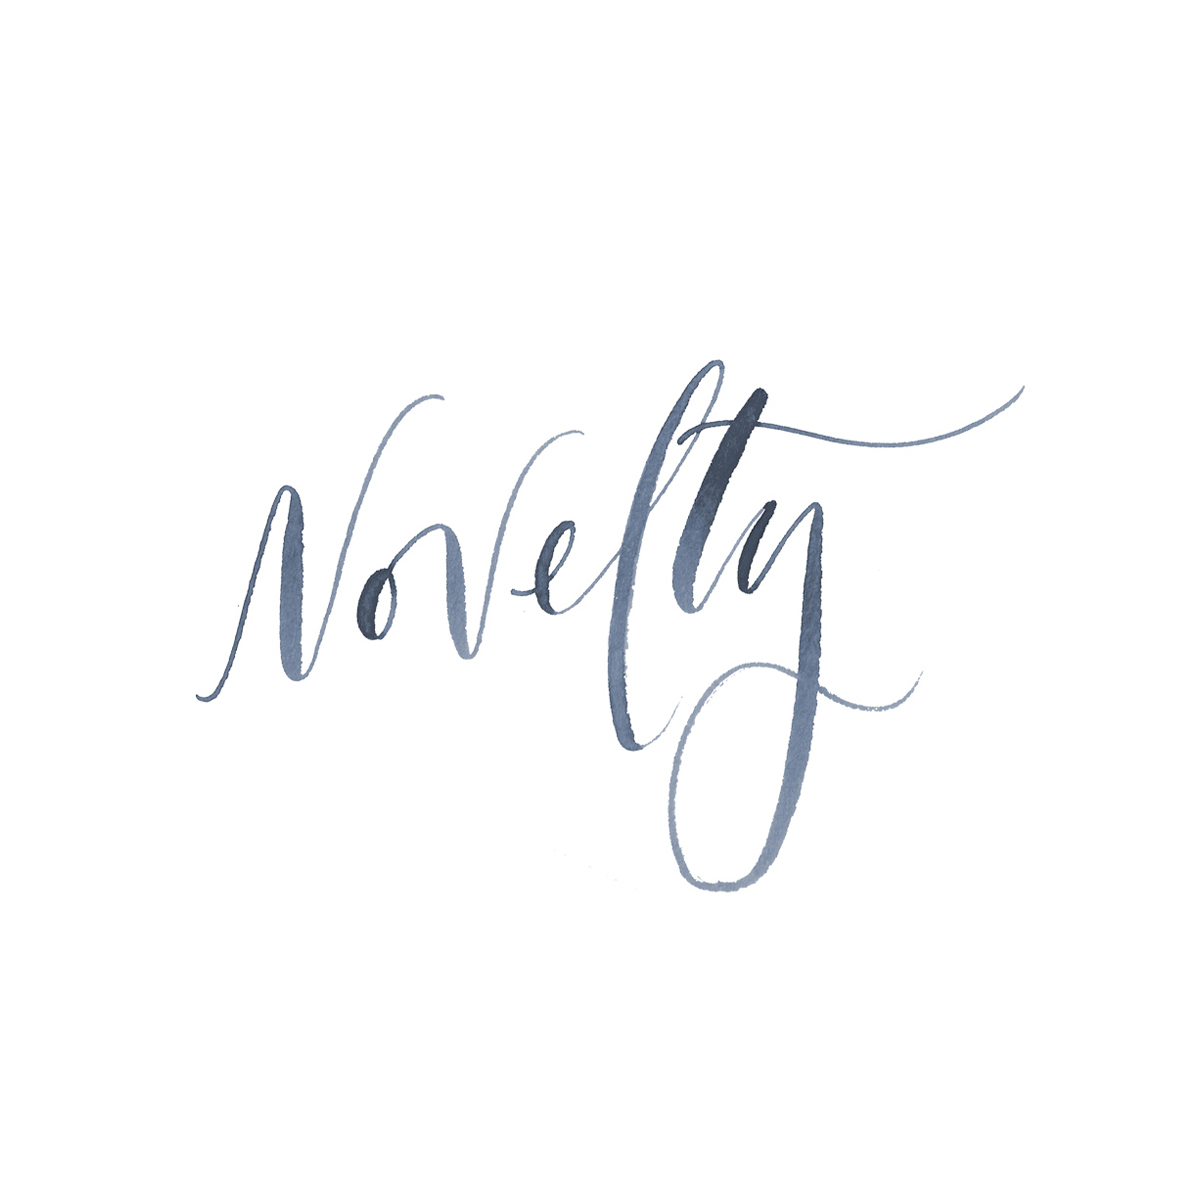 Novelty Events hand-lettered logo